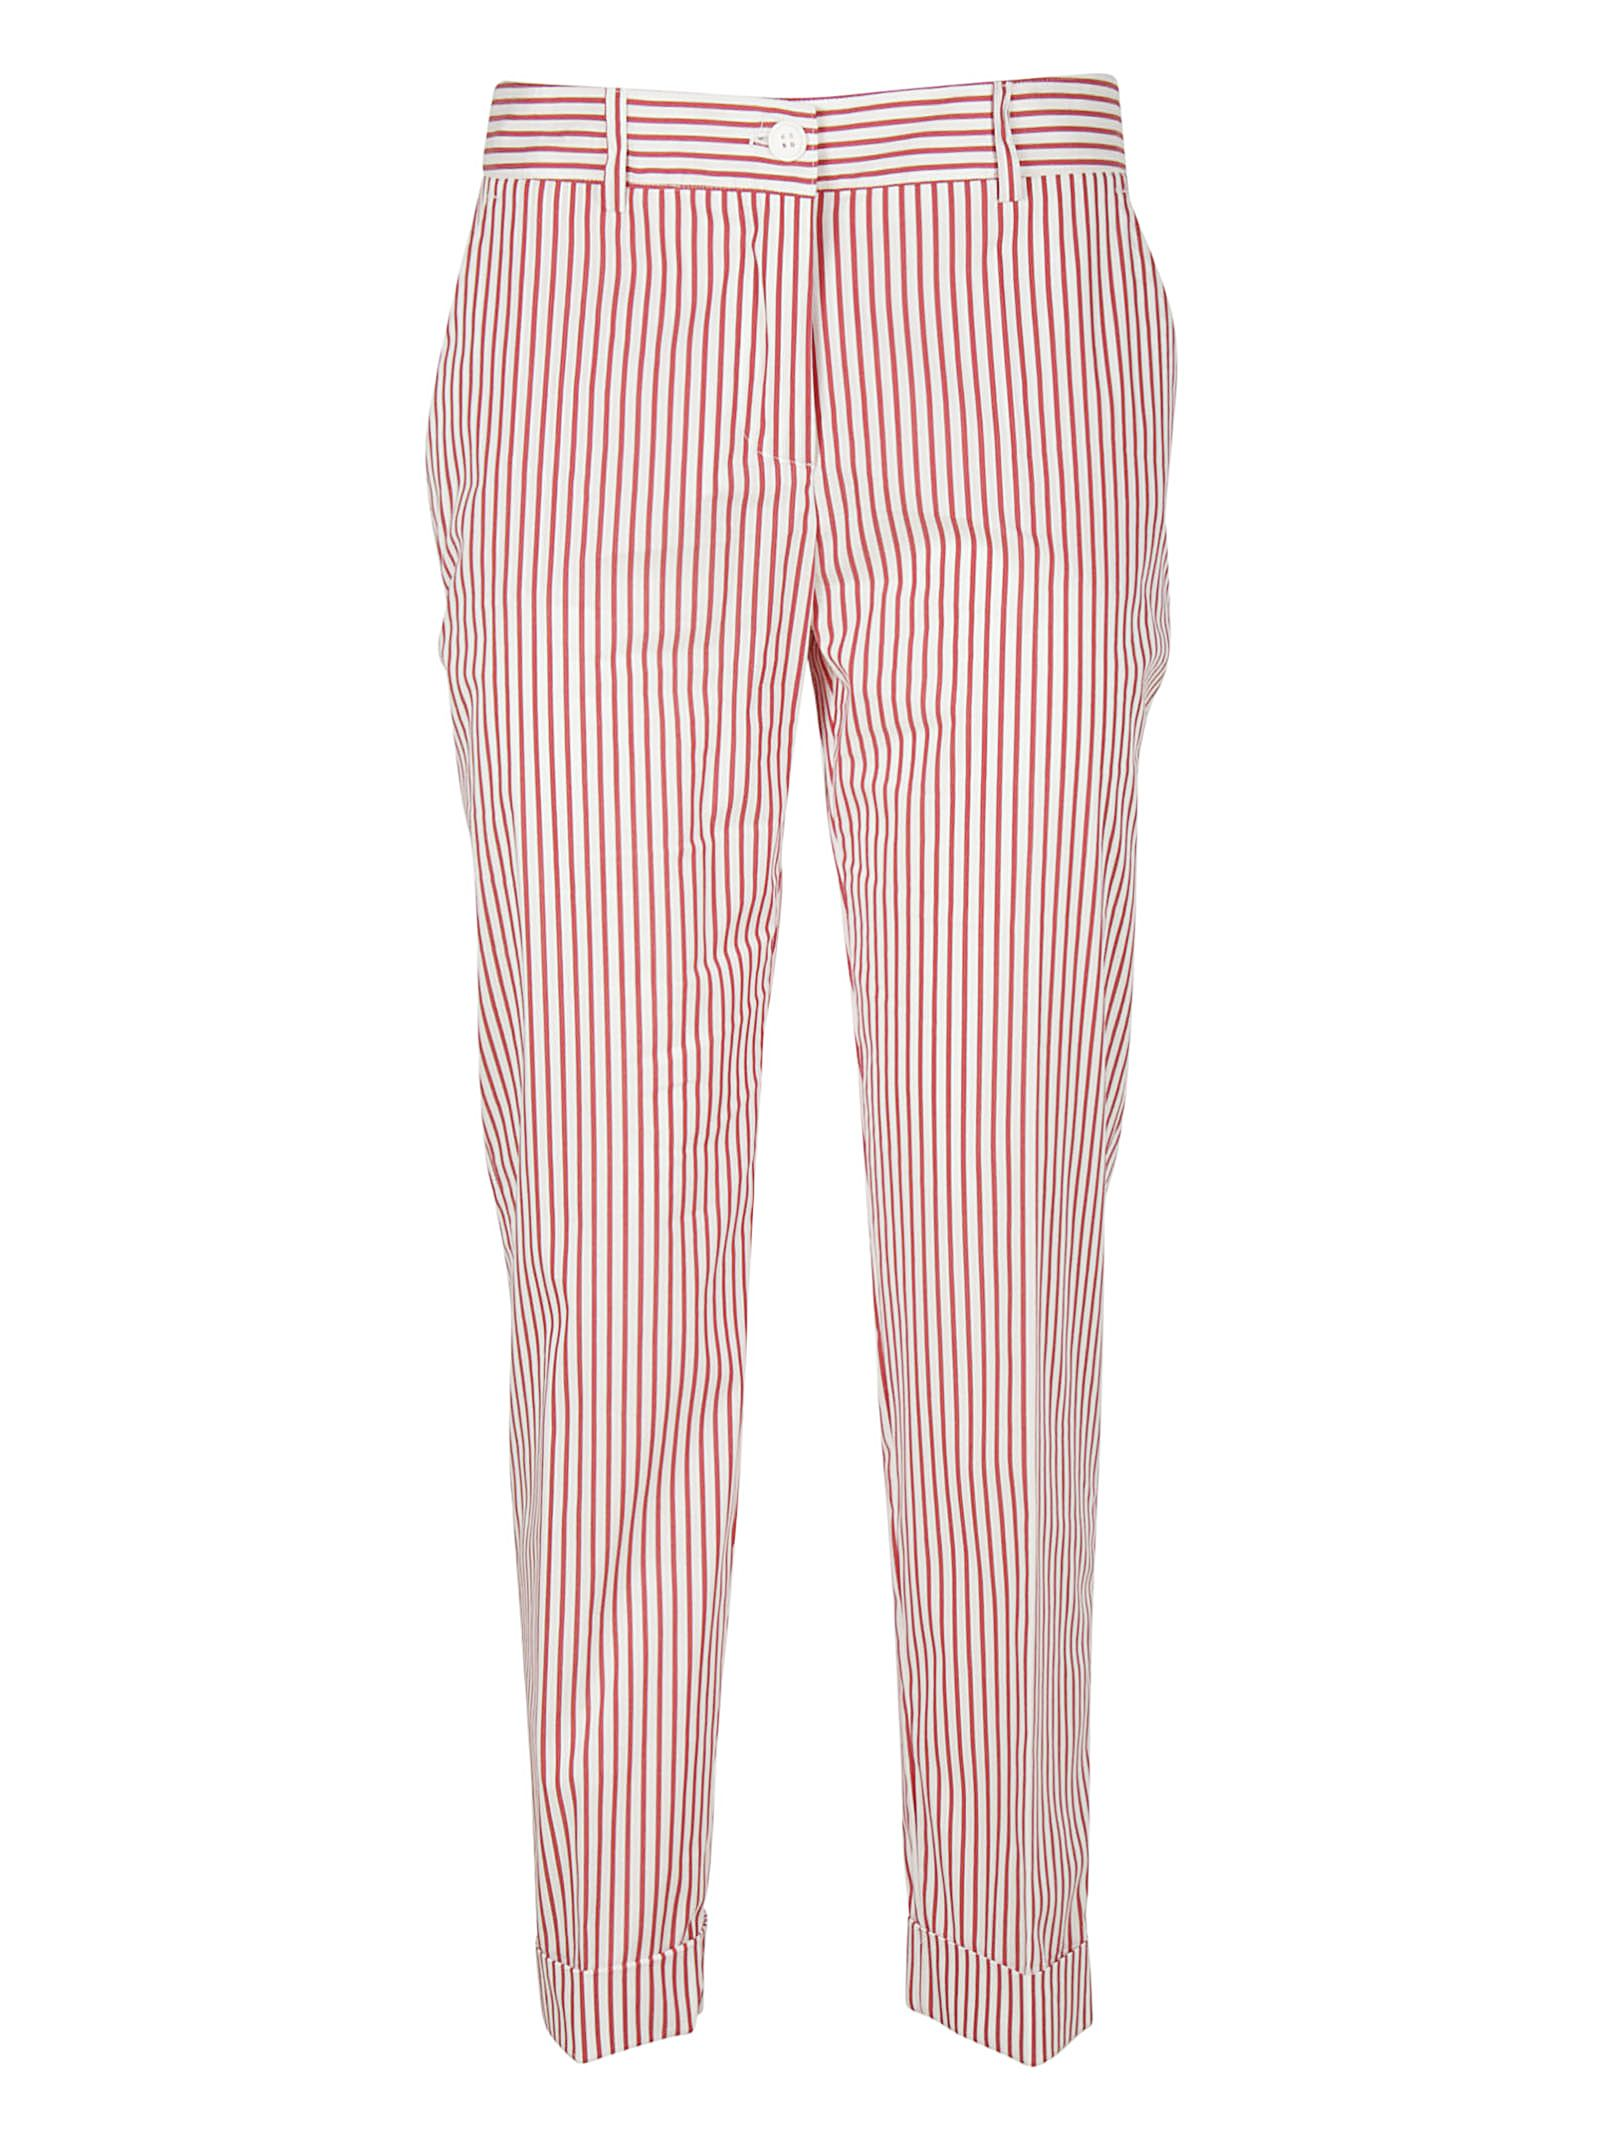 Parosh Parosh Stripe Trousers